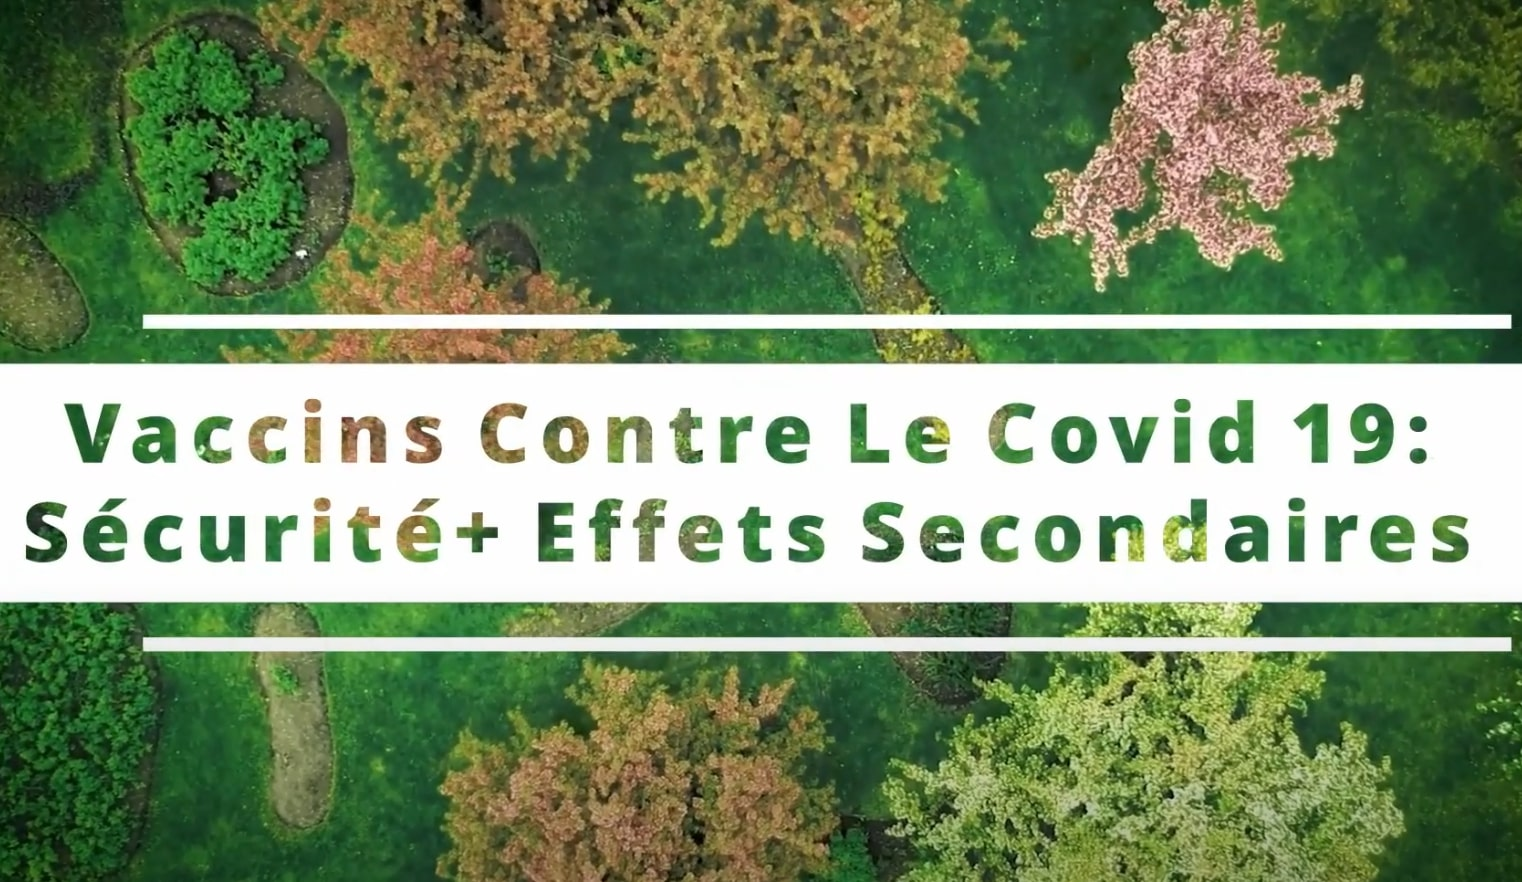 Covid Vaccines: Testing, Safety and Side Effects - French